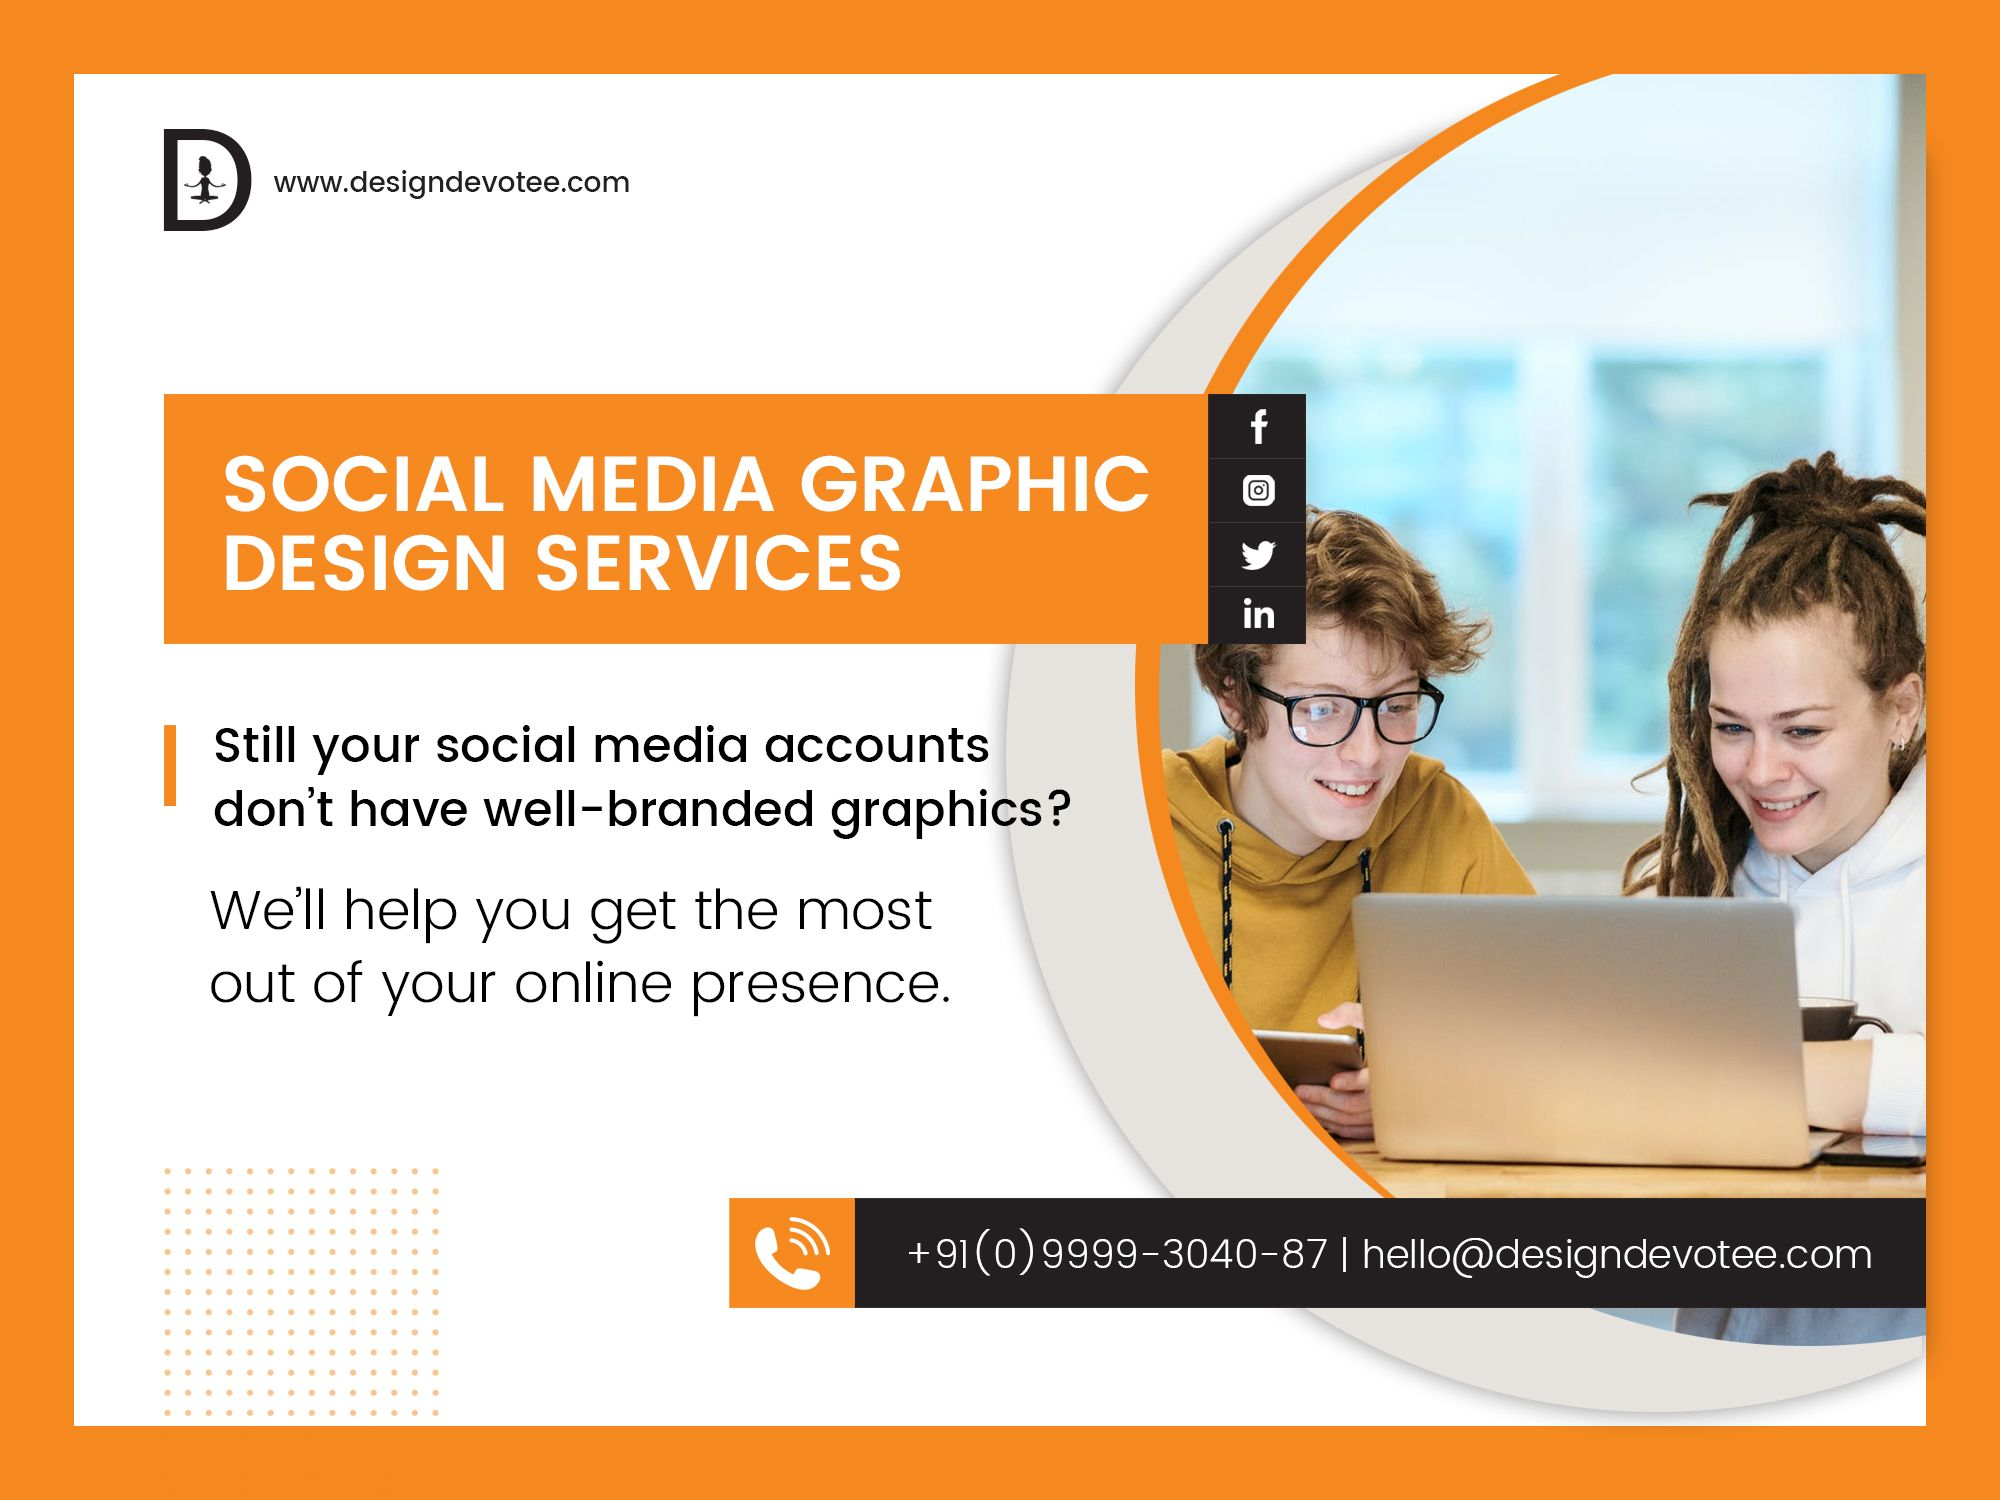 #DesignDevotee #CreativeAgency #GraphicDesign #WebDesign #WebDevelopment #AppDevelopment #DigitalMarketing #SocialMediaMarketing Social media is more popular than ever and we will help your business to get the most out of your online presence.